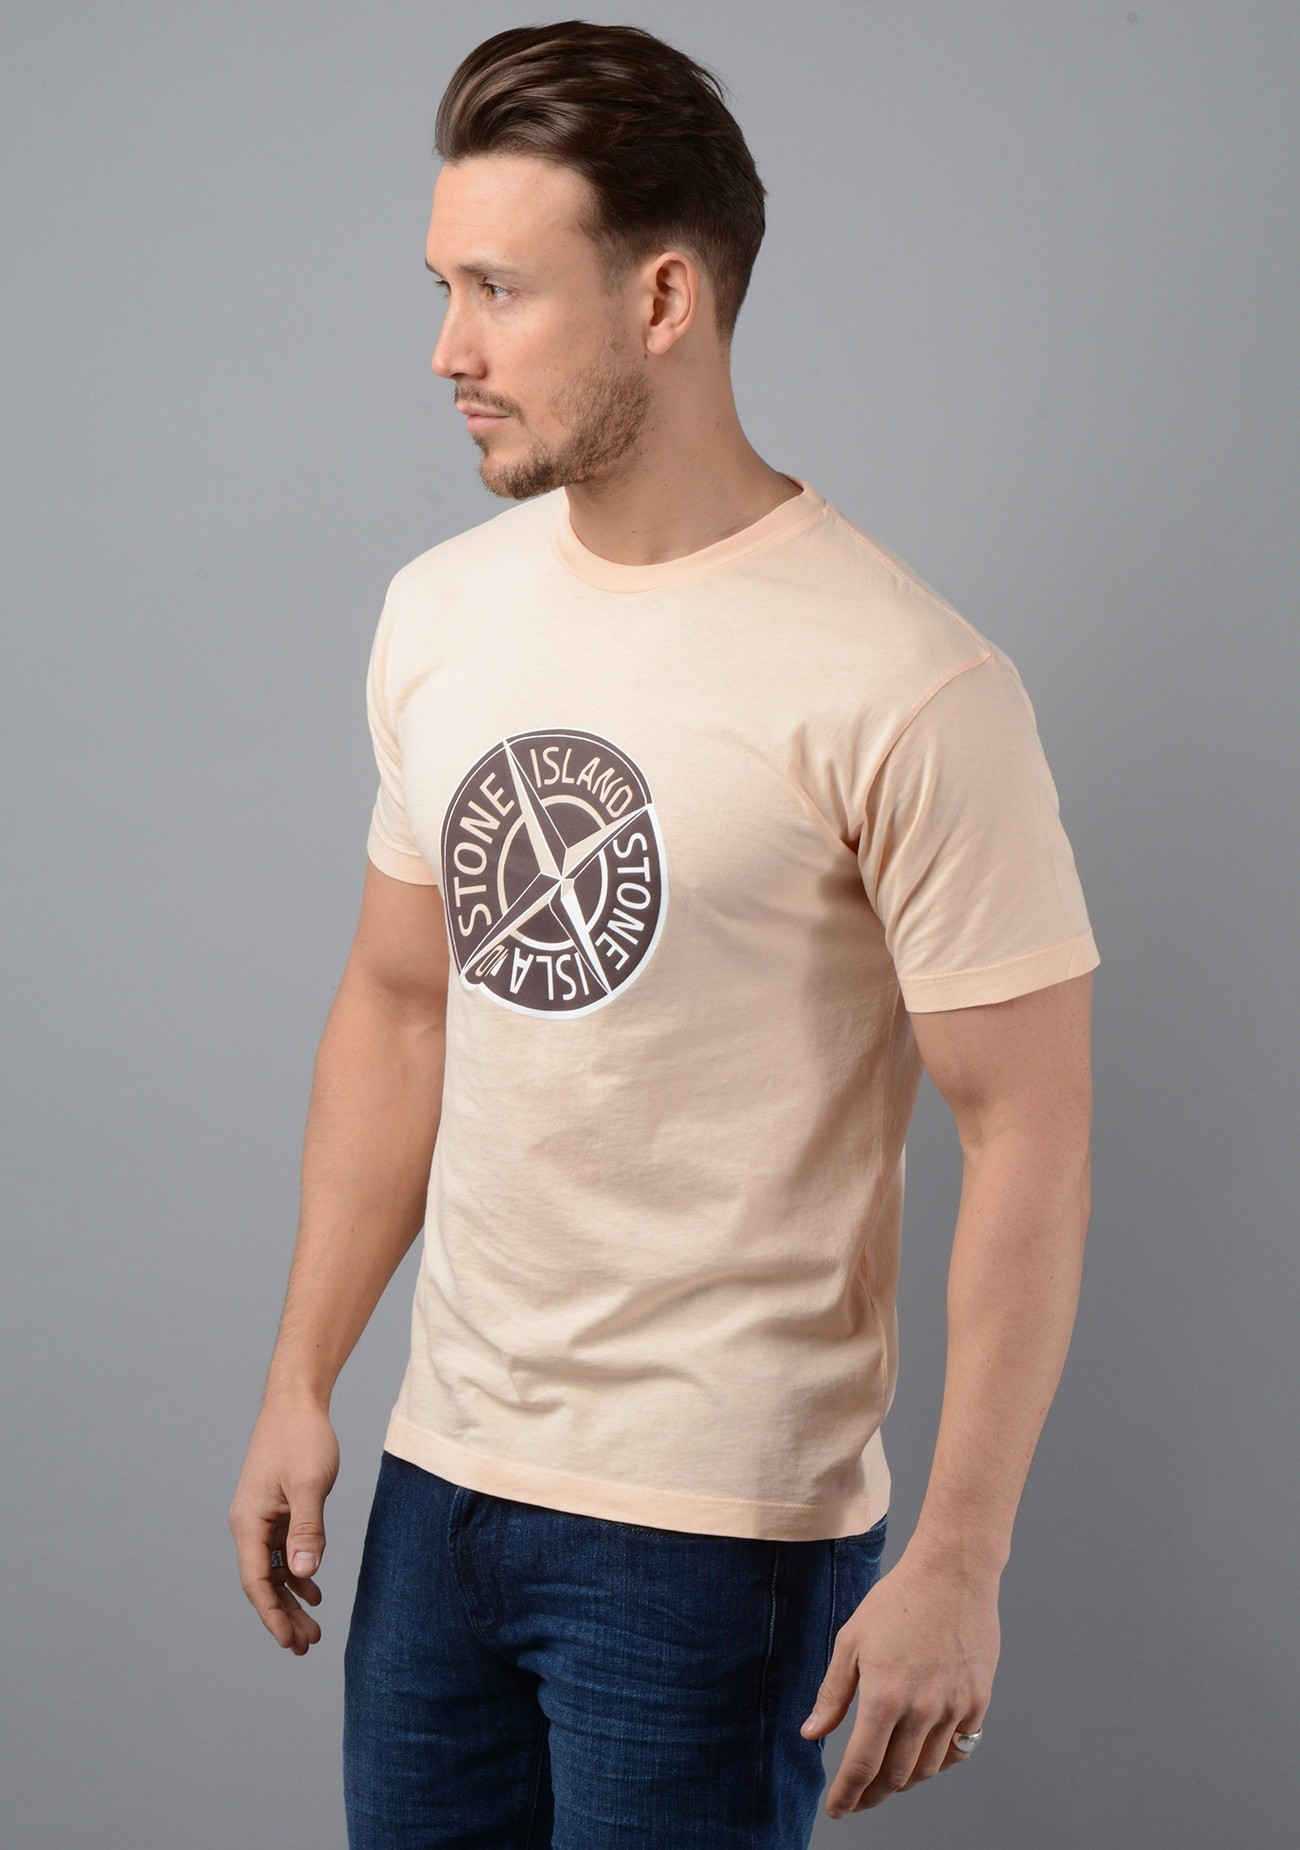 2NS89 Graphic Ten T-Shirt in Peach